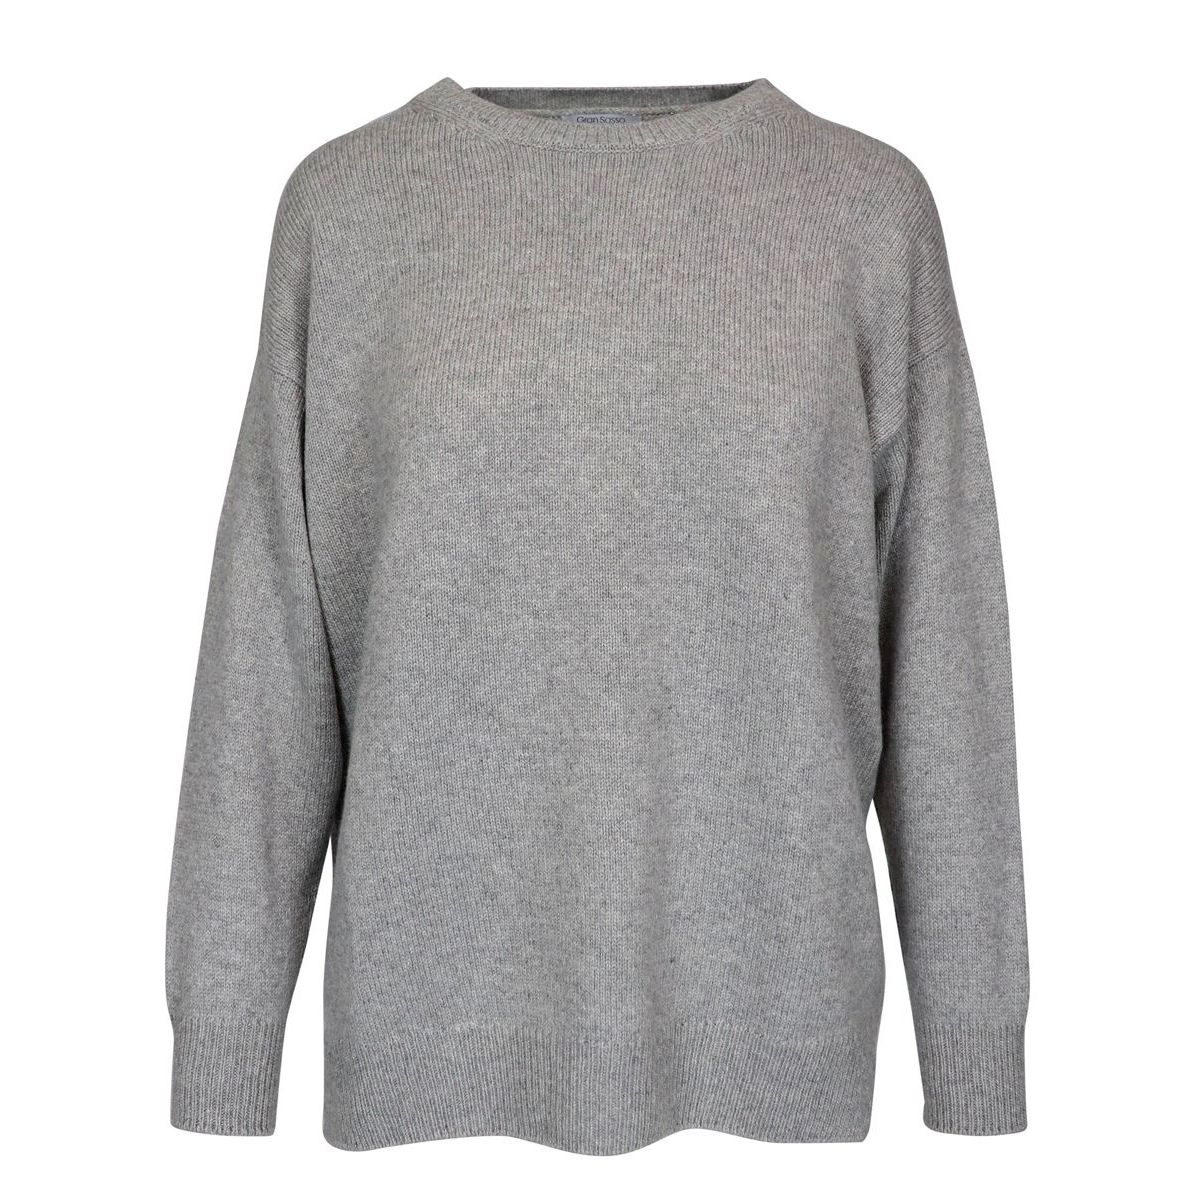 Cashmere crew neck pullover with side slits Light grey Gran Sasso